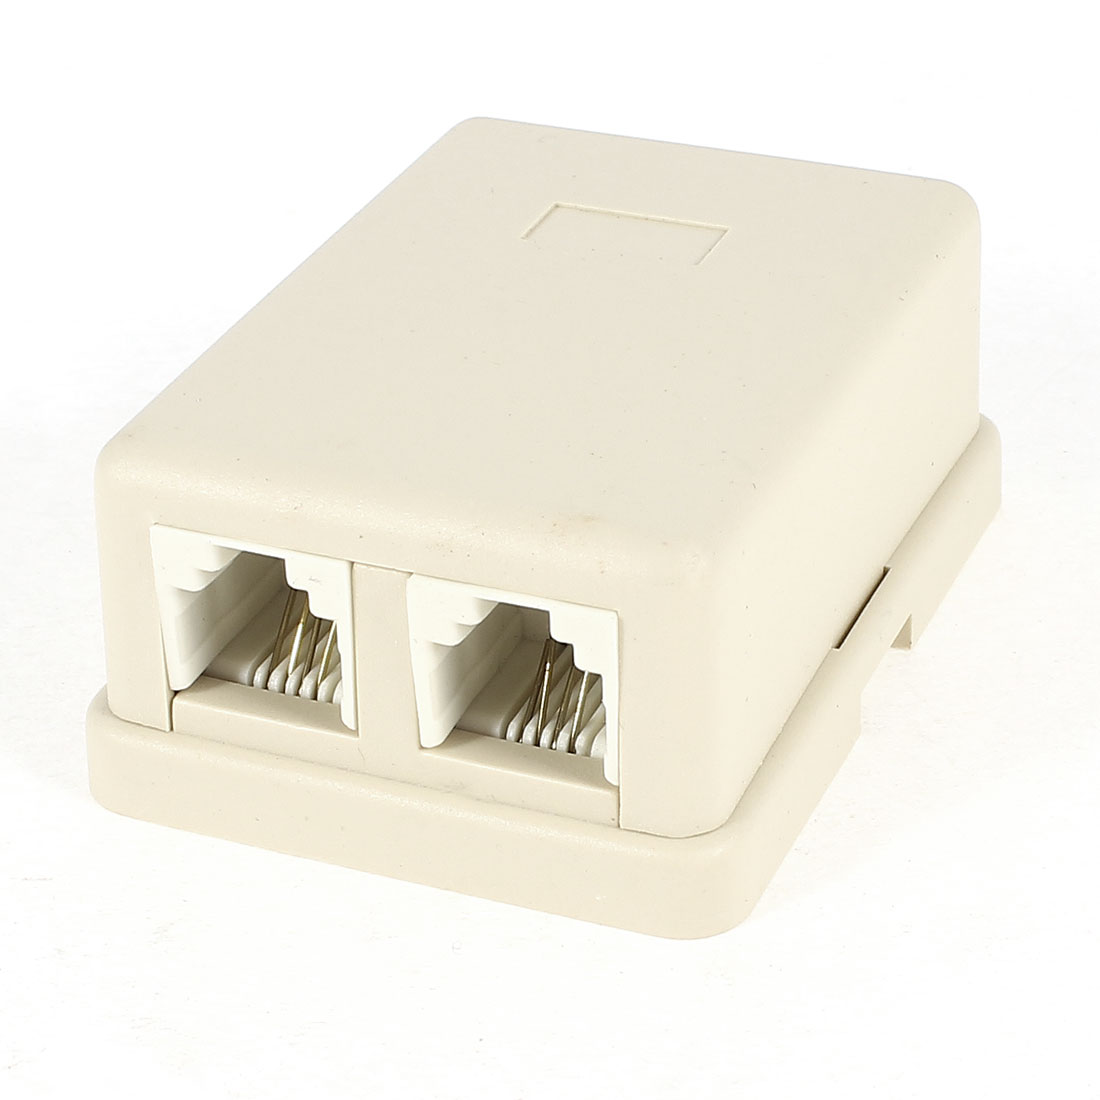 RJ11 6P4C 2 Female Jack Telephone Modular Splitter Joiner Gray